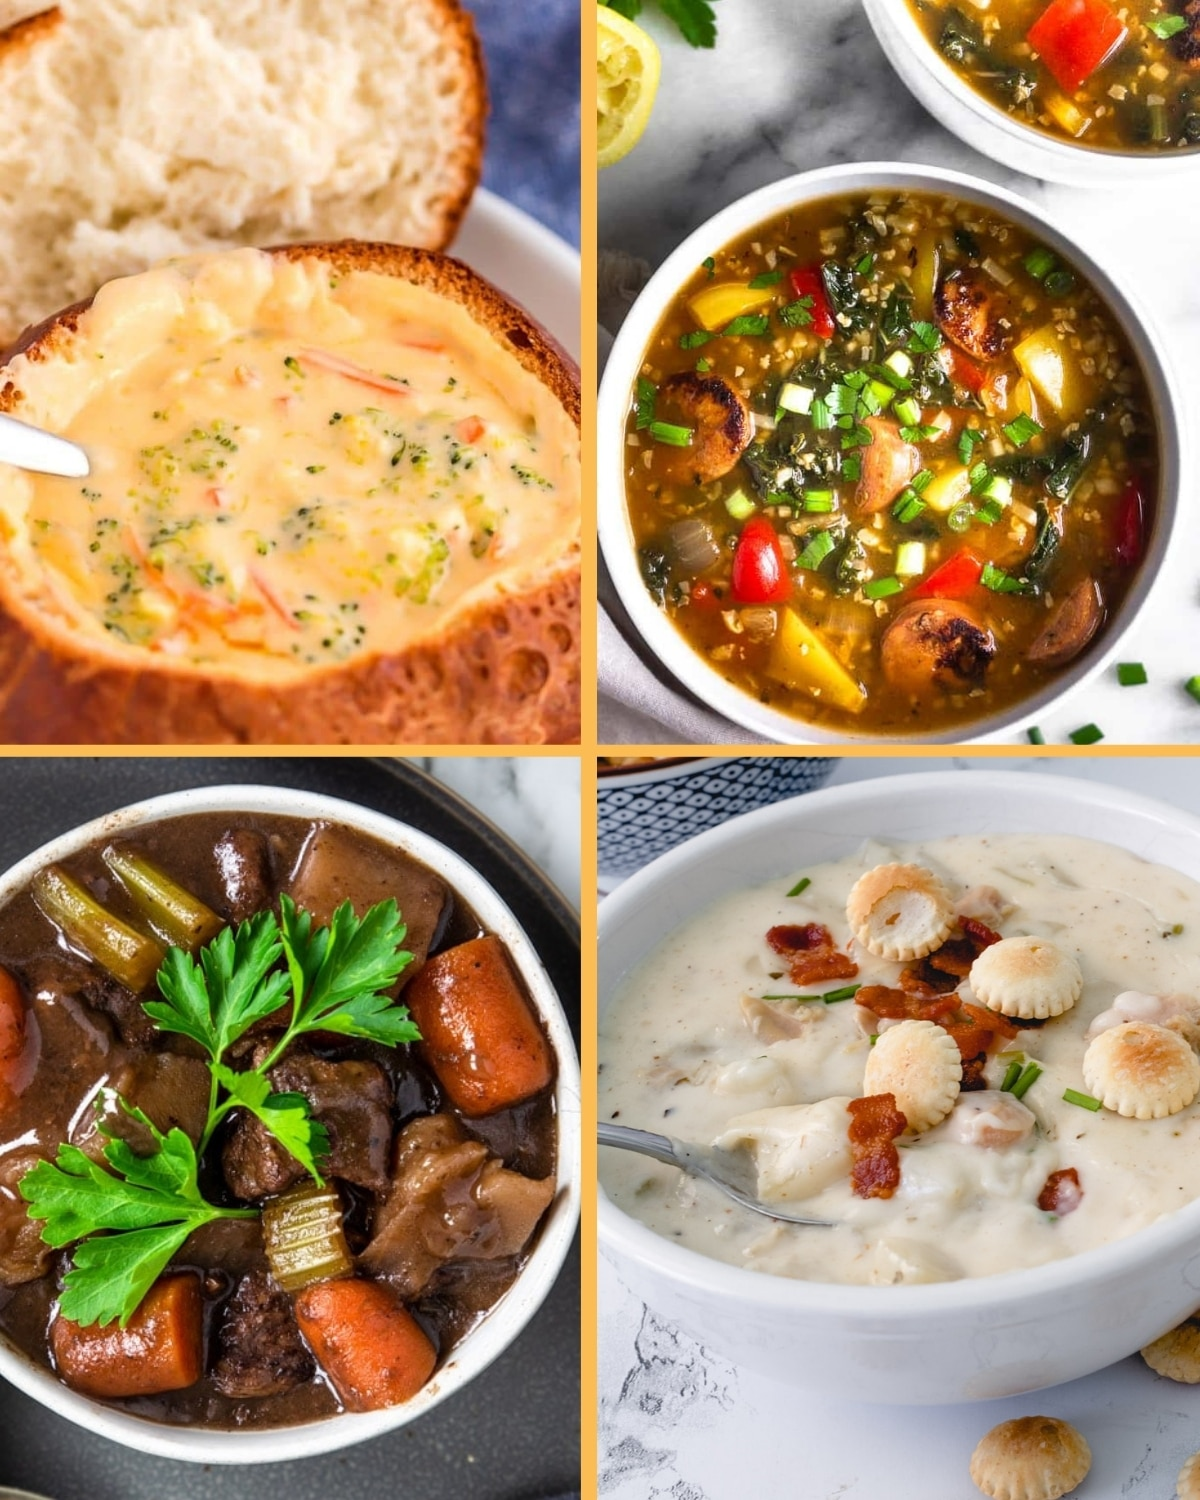 Four soups of the 12 comforting soups, in a grid: brocolli cheese, sausage, beef stew, clam chowder.